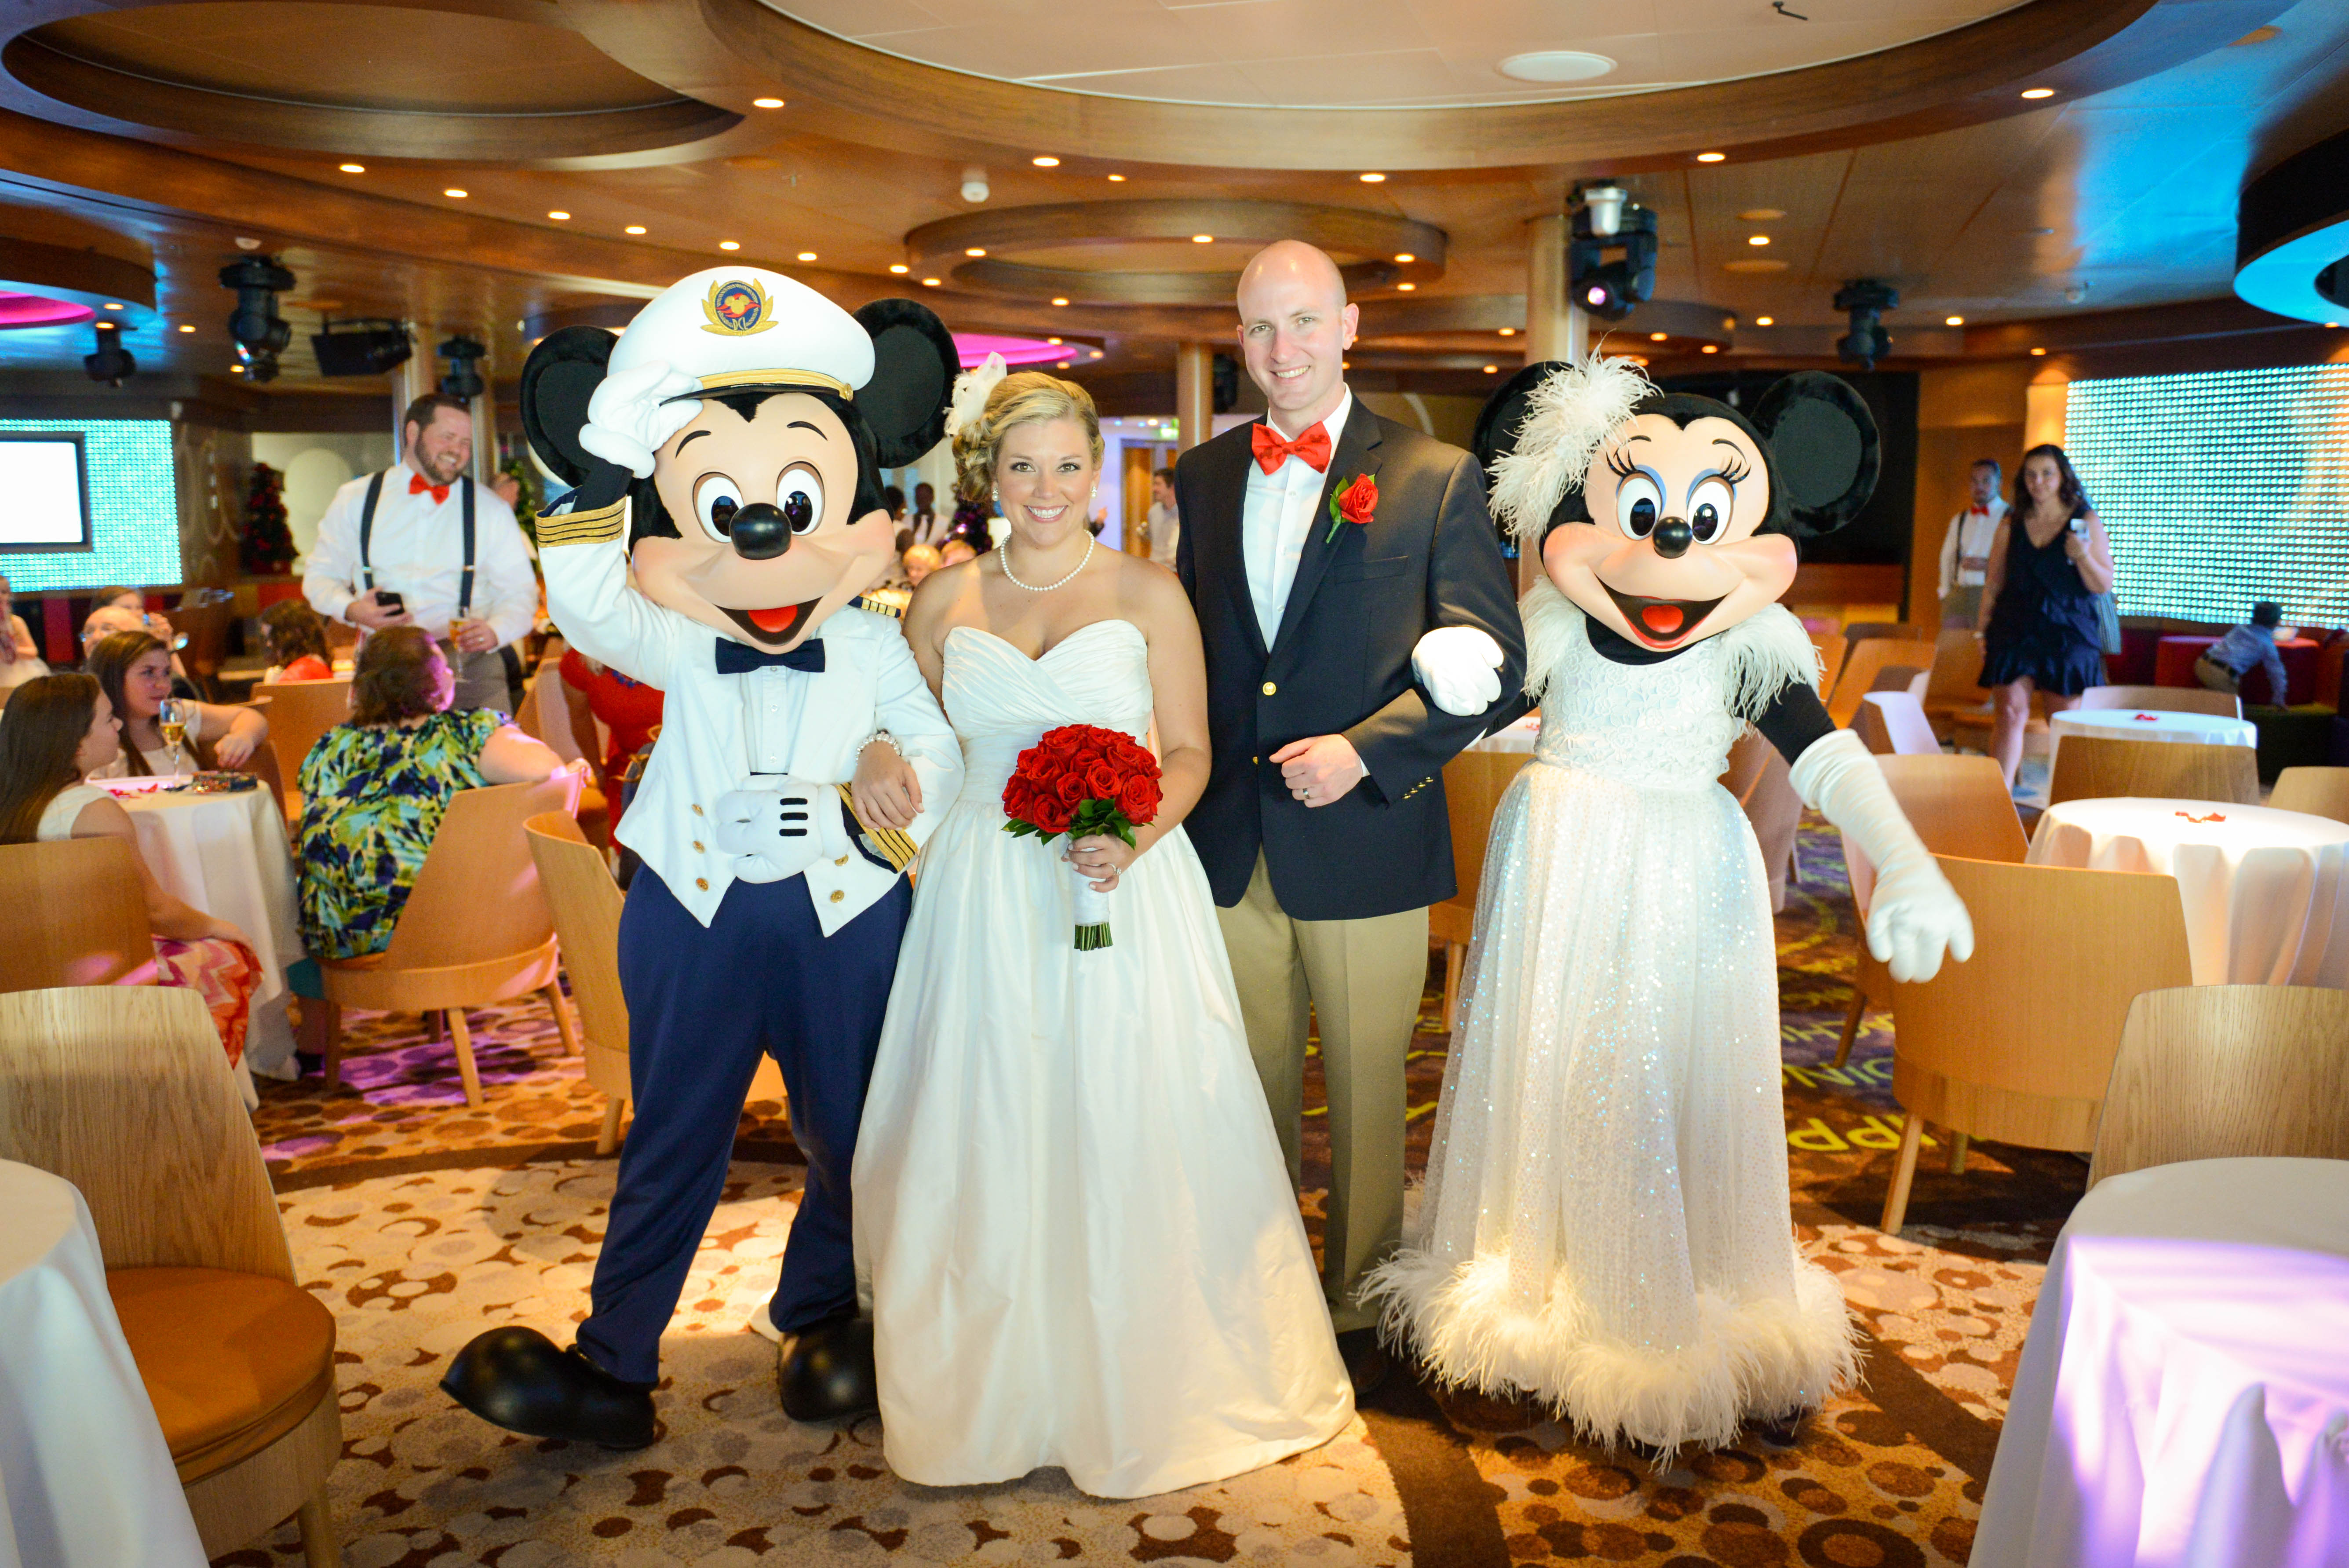 Disney cruise wedding details for Cost of world cruise